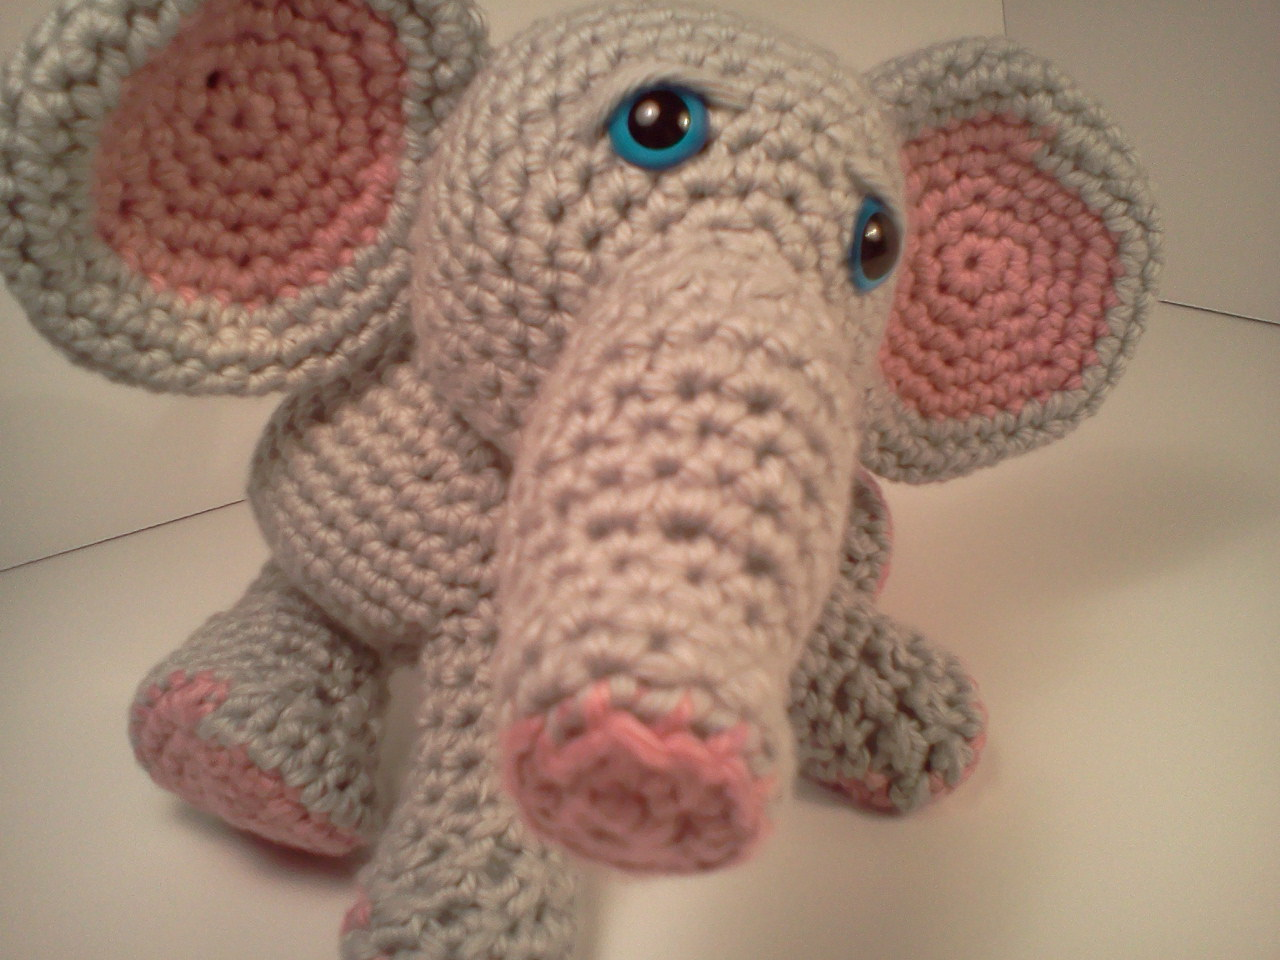 ... AmiPal Amigurumi Stuffed Animal Crochet Pattern Now Available